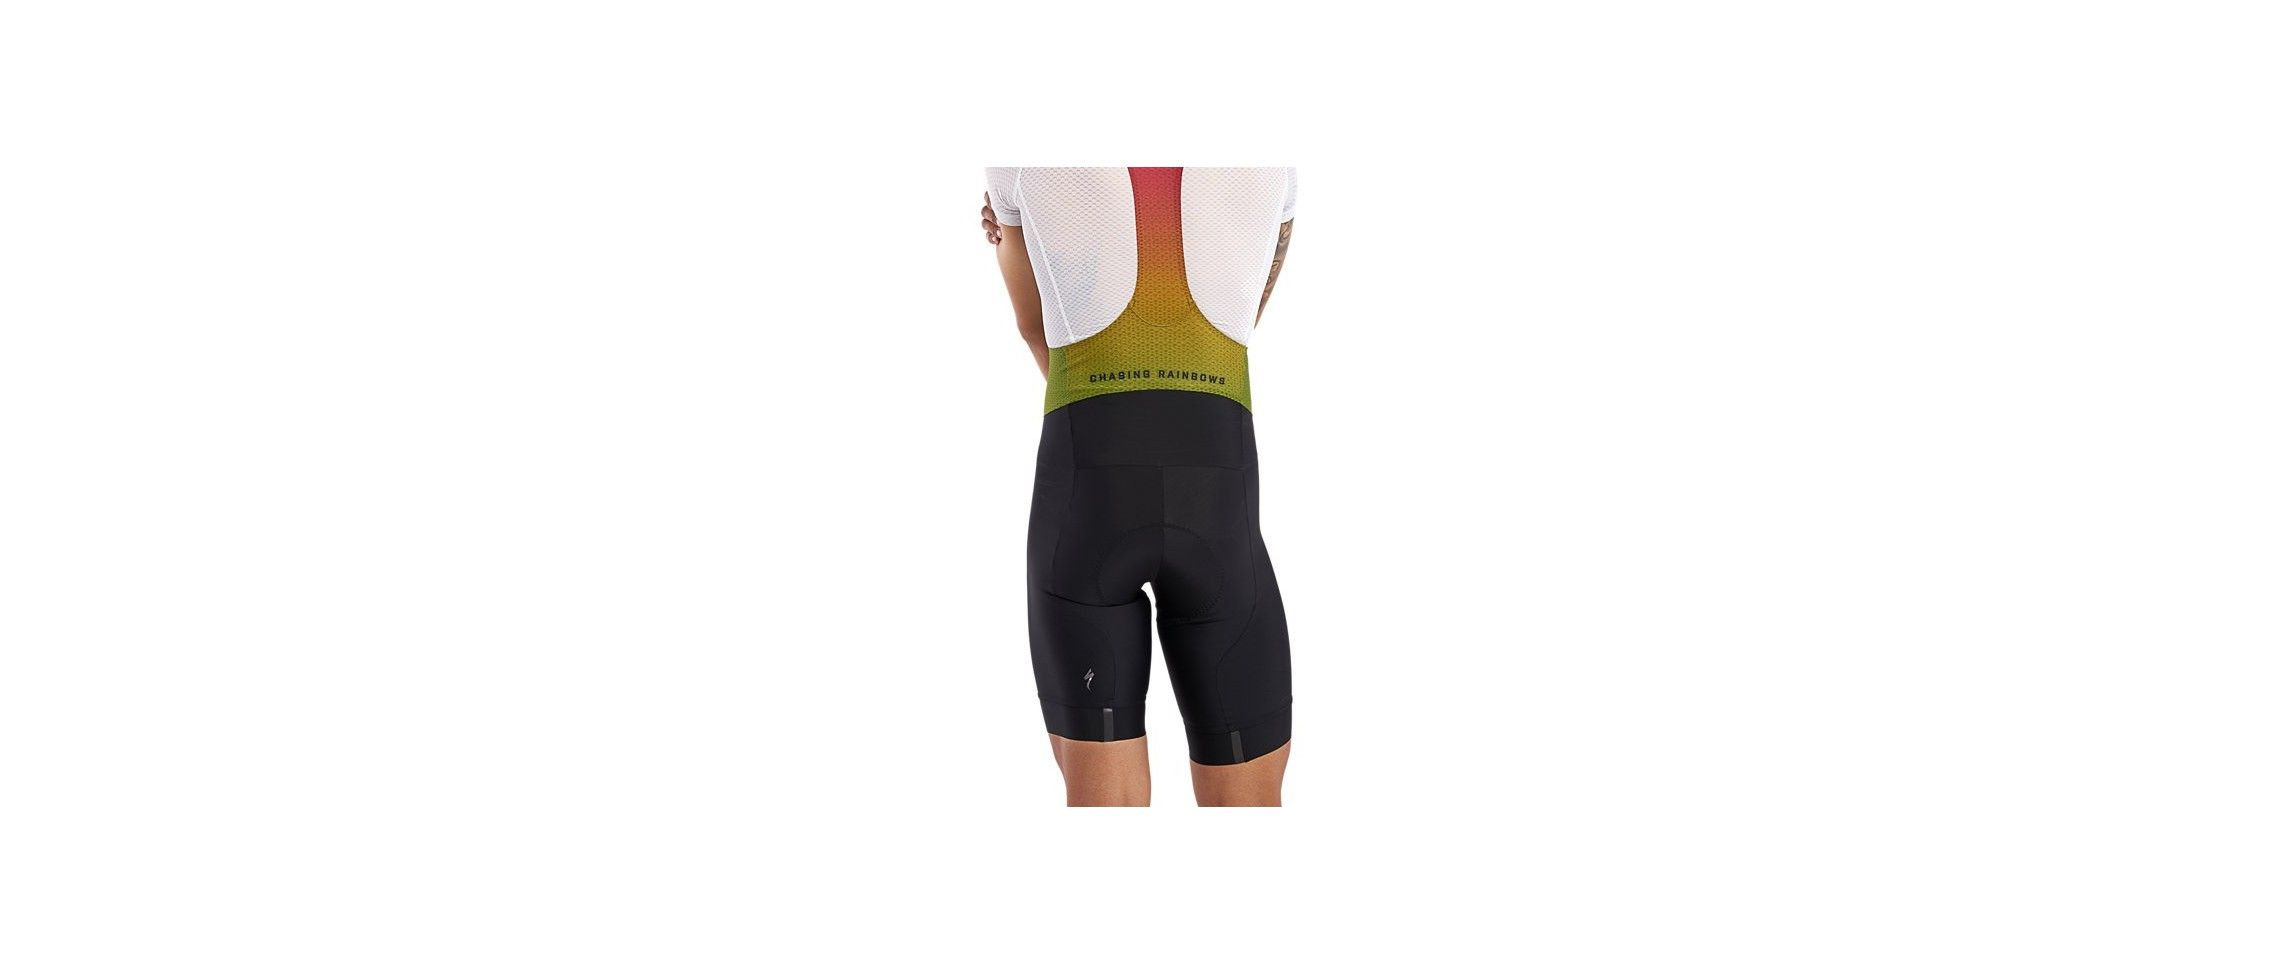 Culotte SL Bib Shorts Sagan Collections Specialized Underexposed 1 IBKBike.es